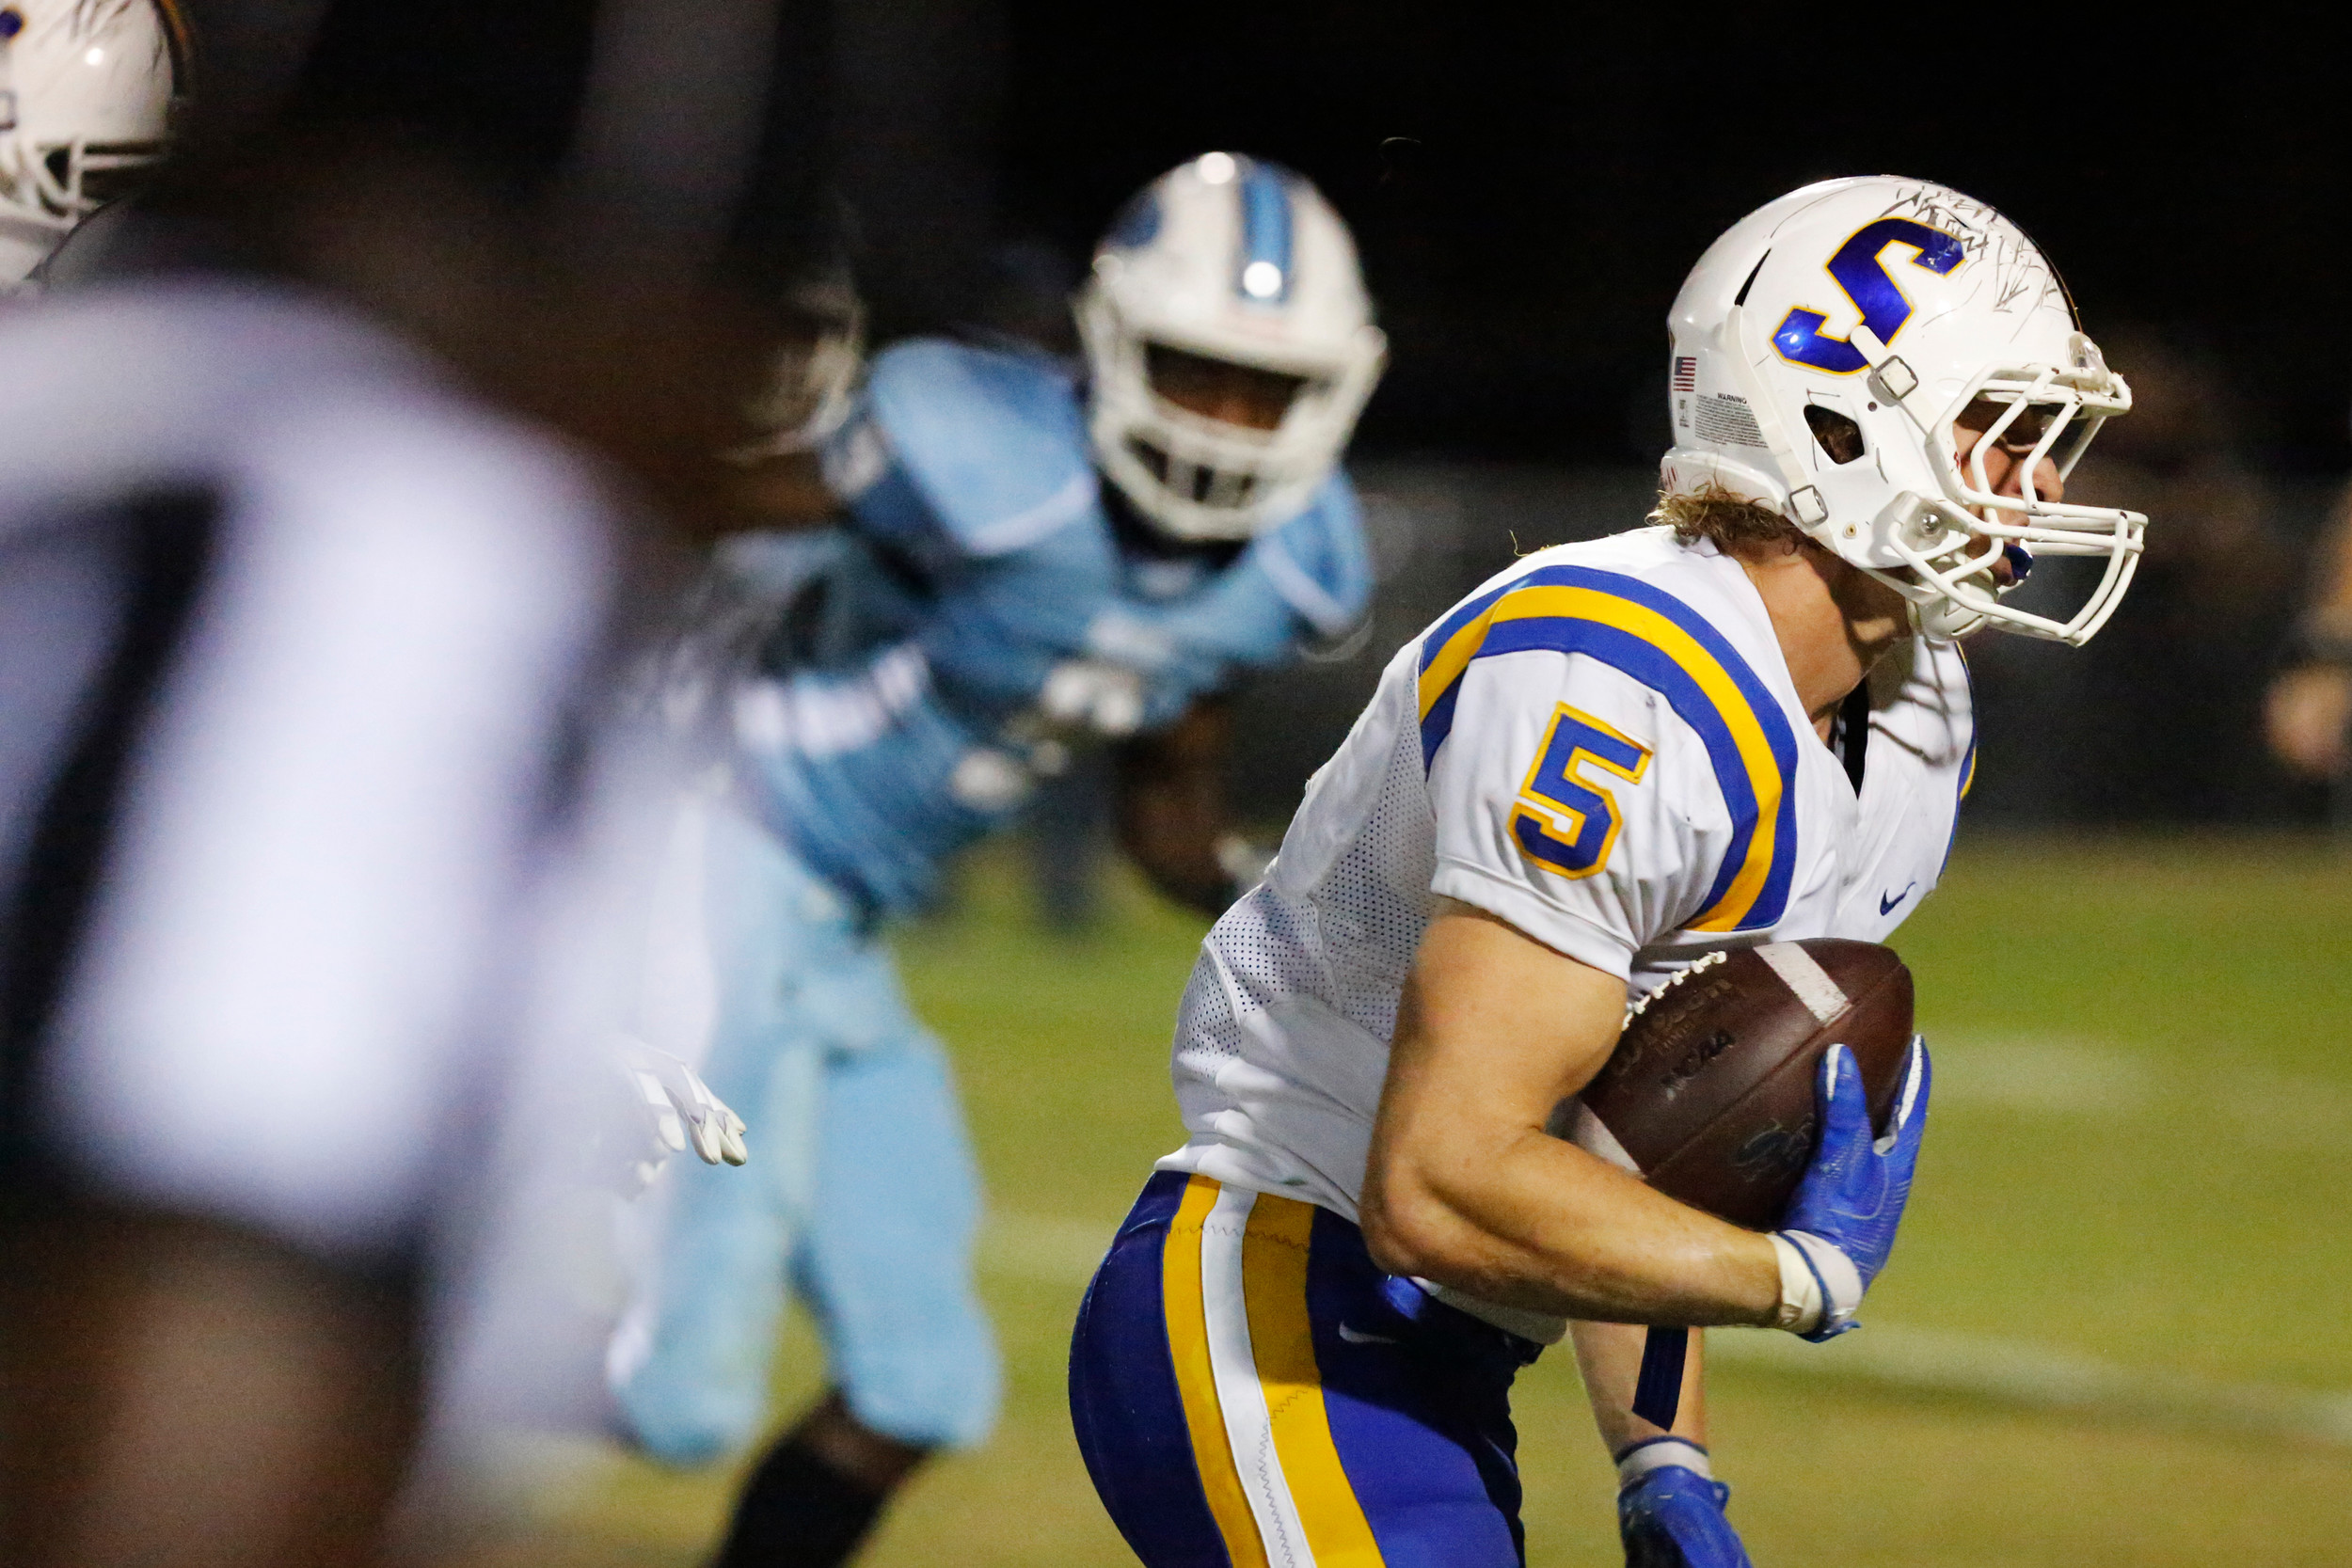 Sumter's Cooper Mota (5) returns a fumble 24 yards for a touchdown during the Gamecocks' 31-20 victory over South Florence on Friday at Florence's Memorial Stadium.